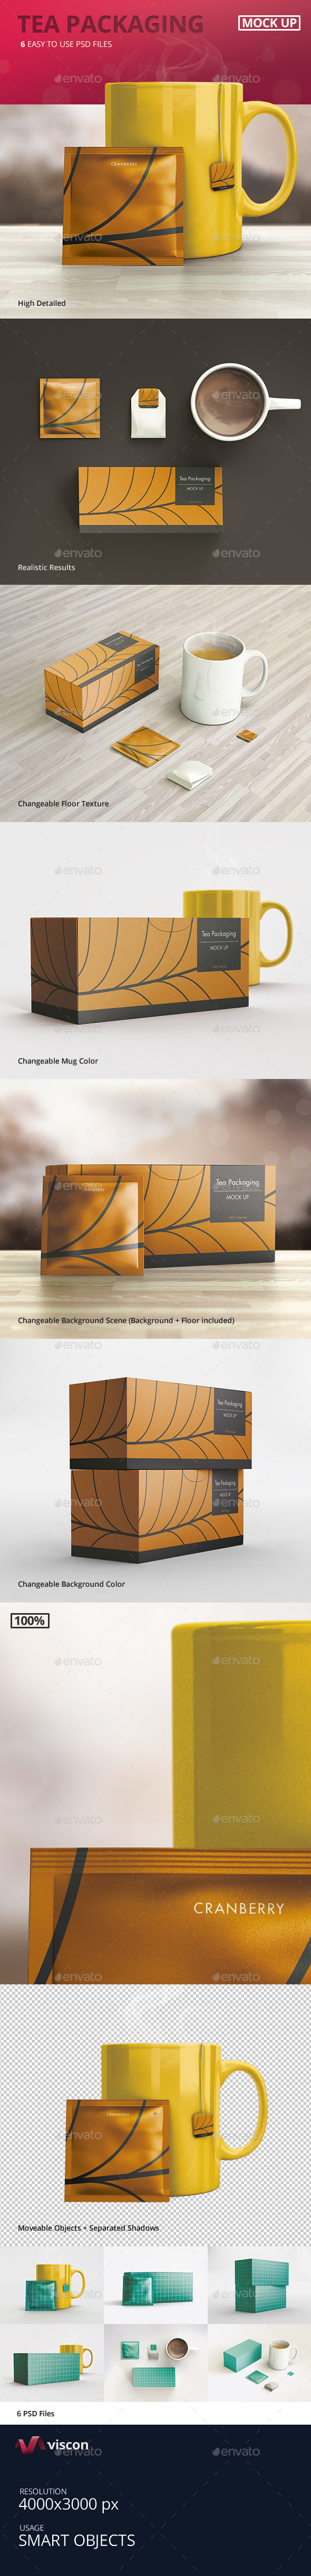 Tea Packaging Mock-Ups - Food and Drink Packaging